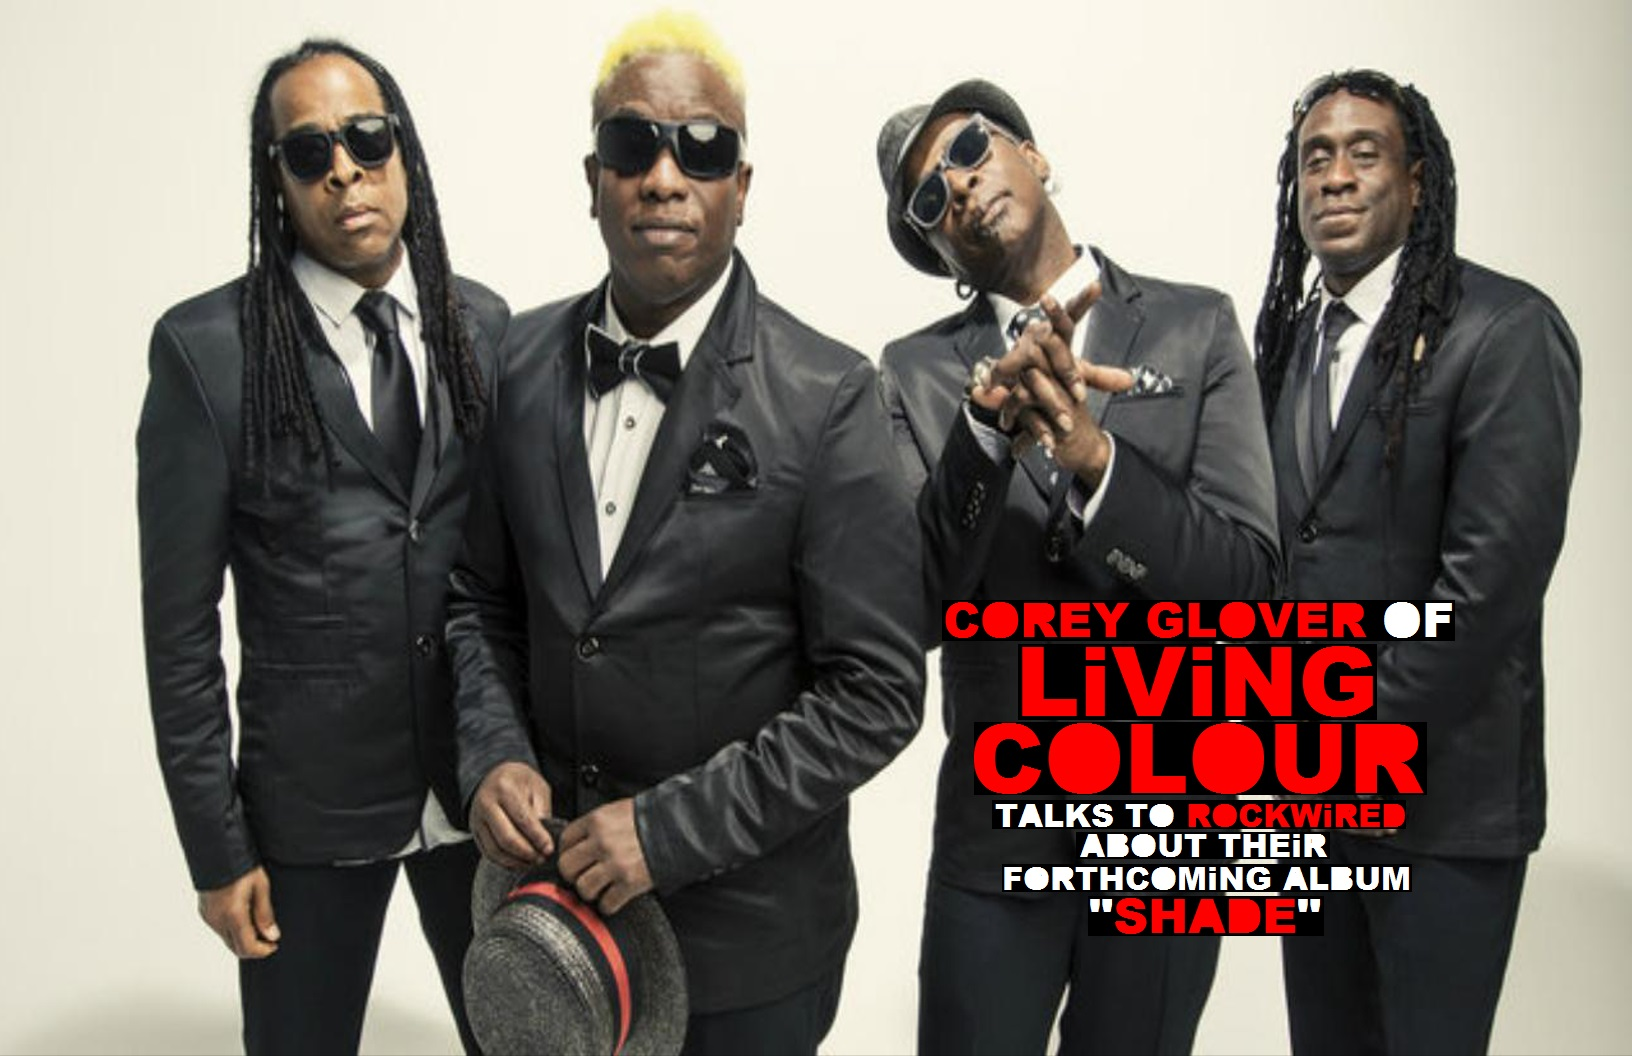 http://www.rockwired.com/LivingColour2017.jpg